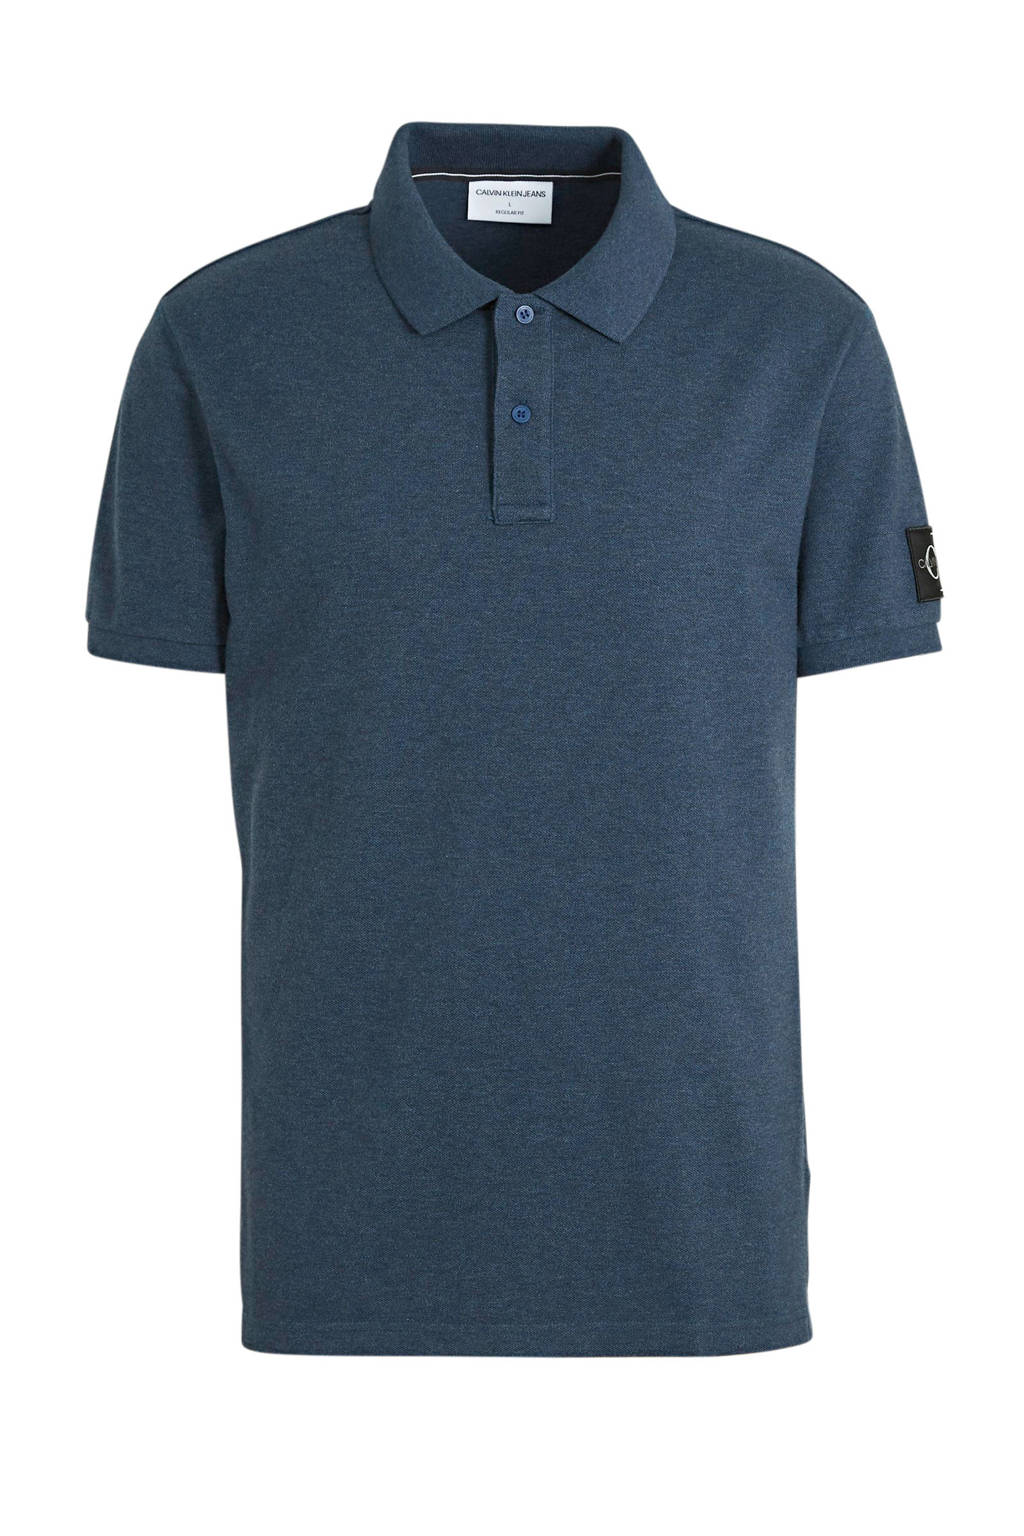 CALVIN KLEIN JEANS regular fit polo donkerblauw, Donkerblauw